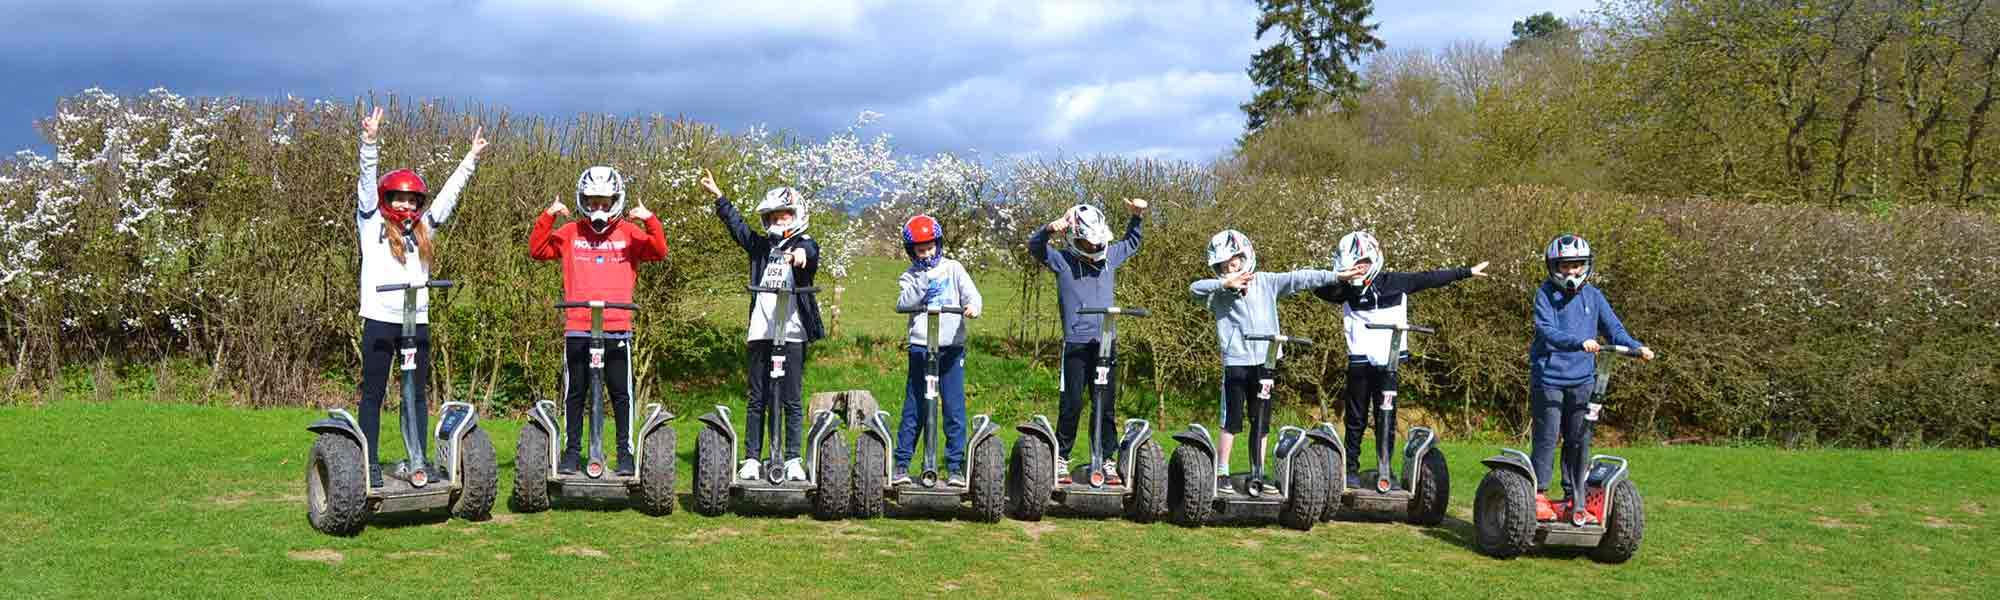 Little Bird Segway Adventure Experiences - Off Road Fun for Ages 10+, Up to 67% off